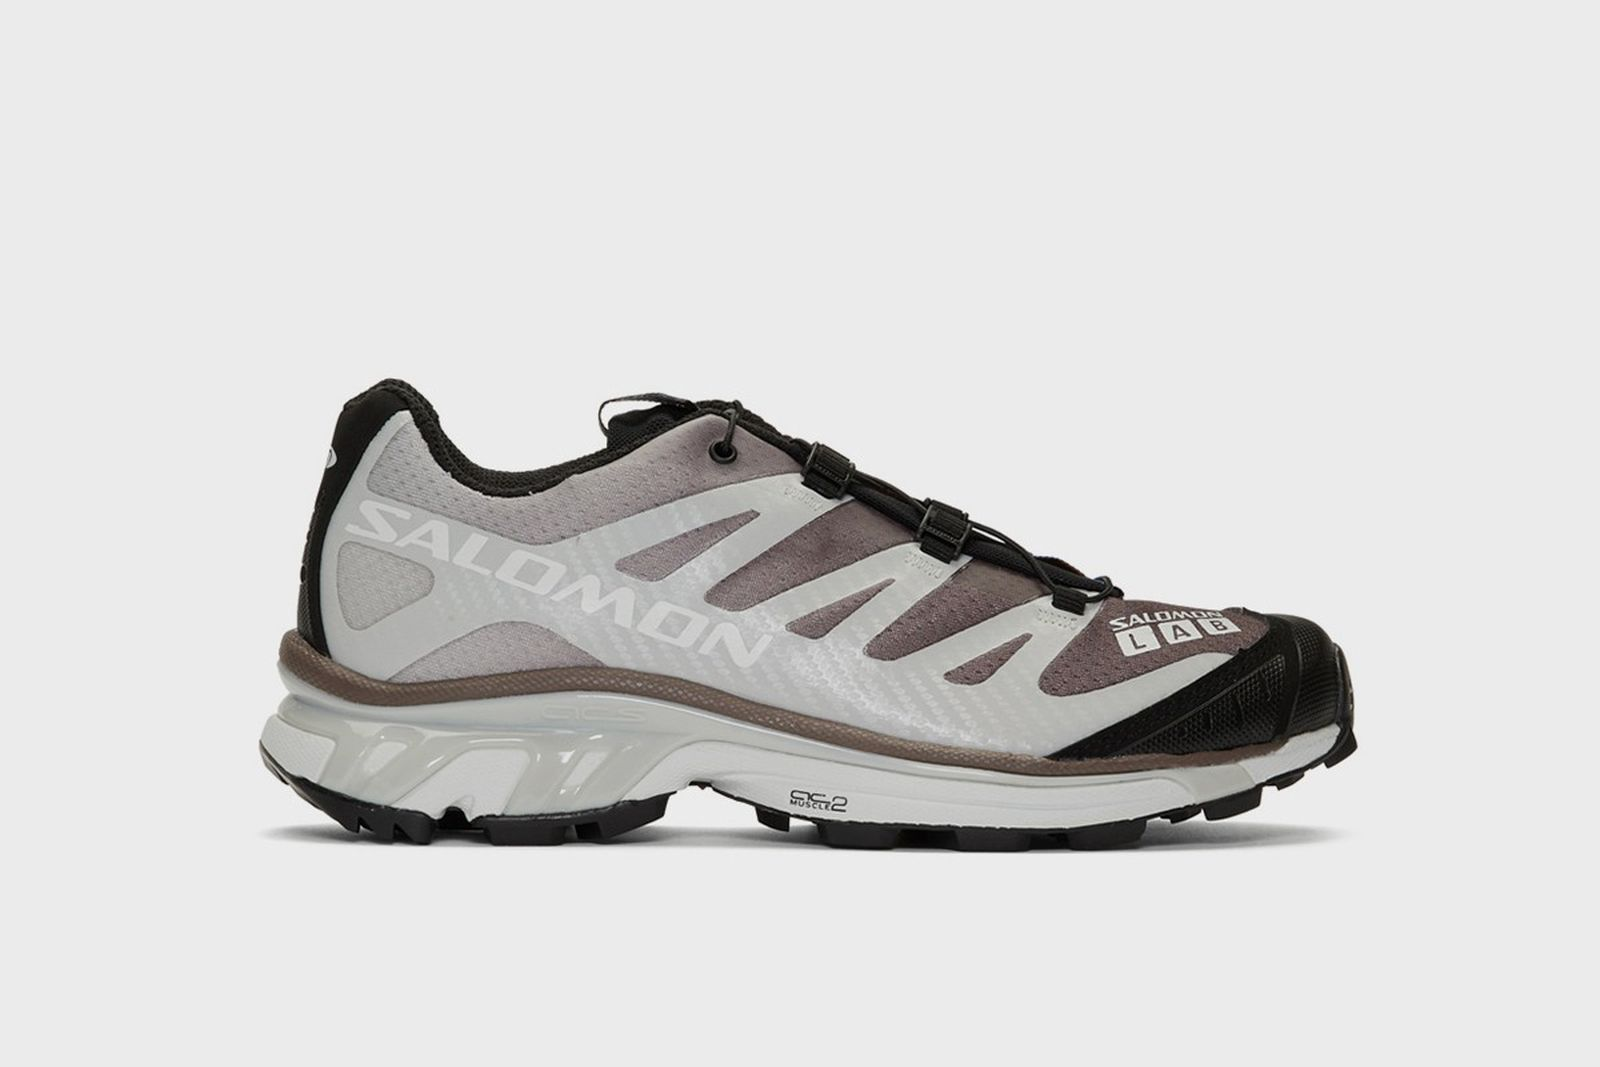 Salomon sneakers purple and grey